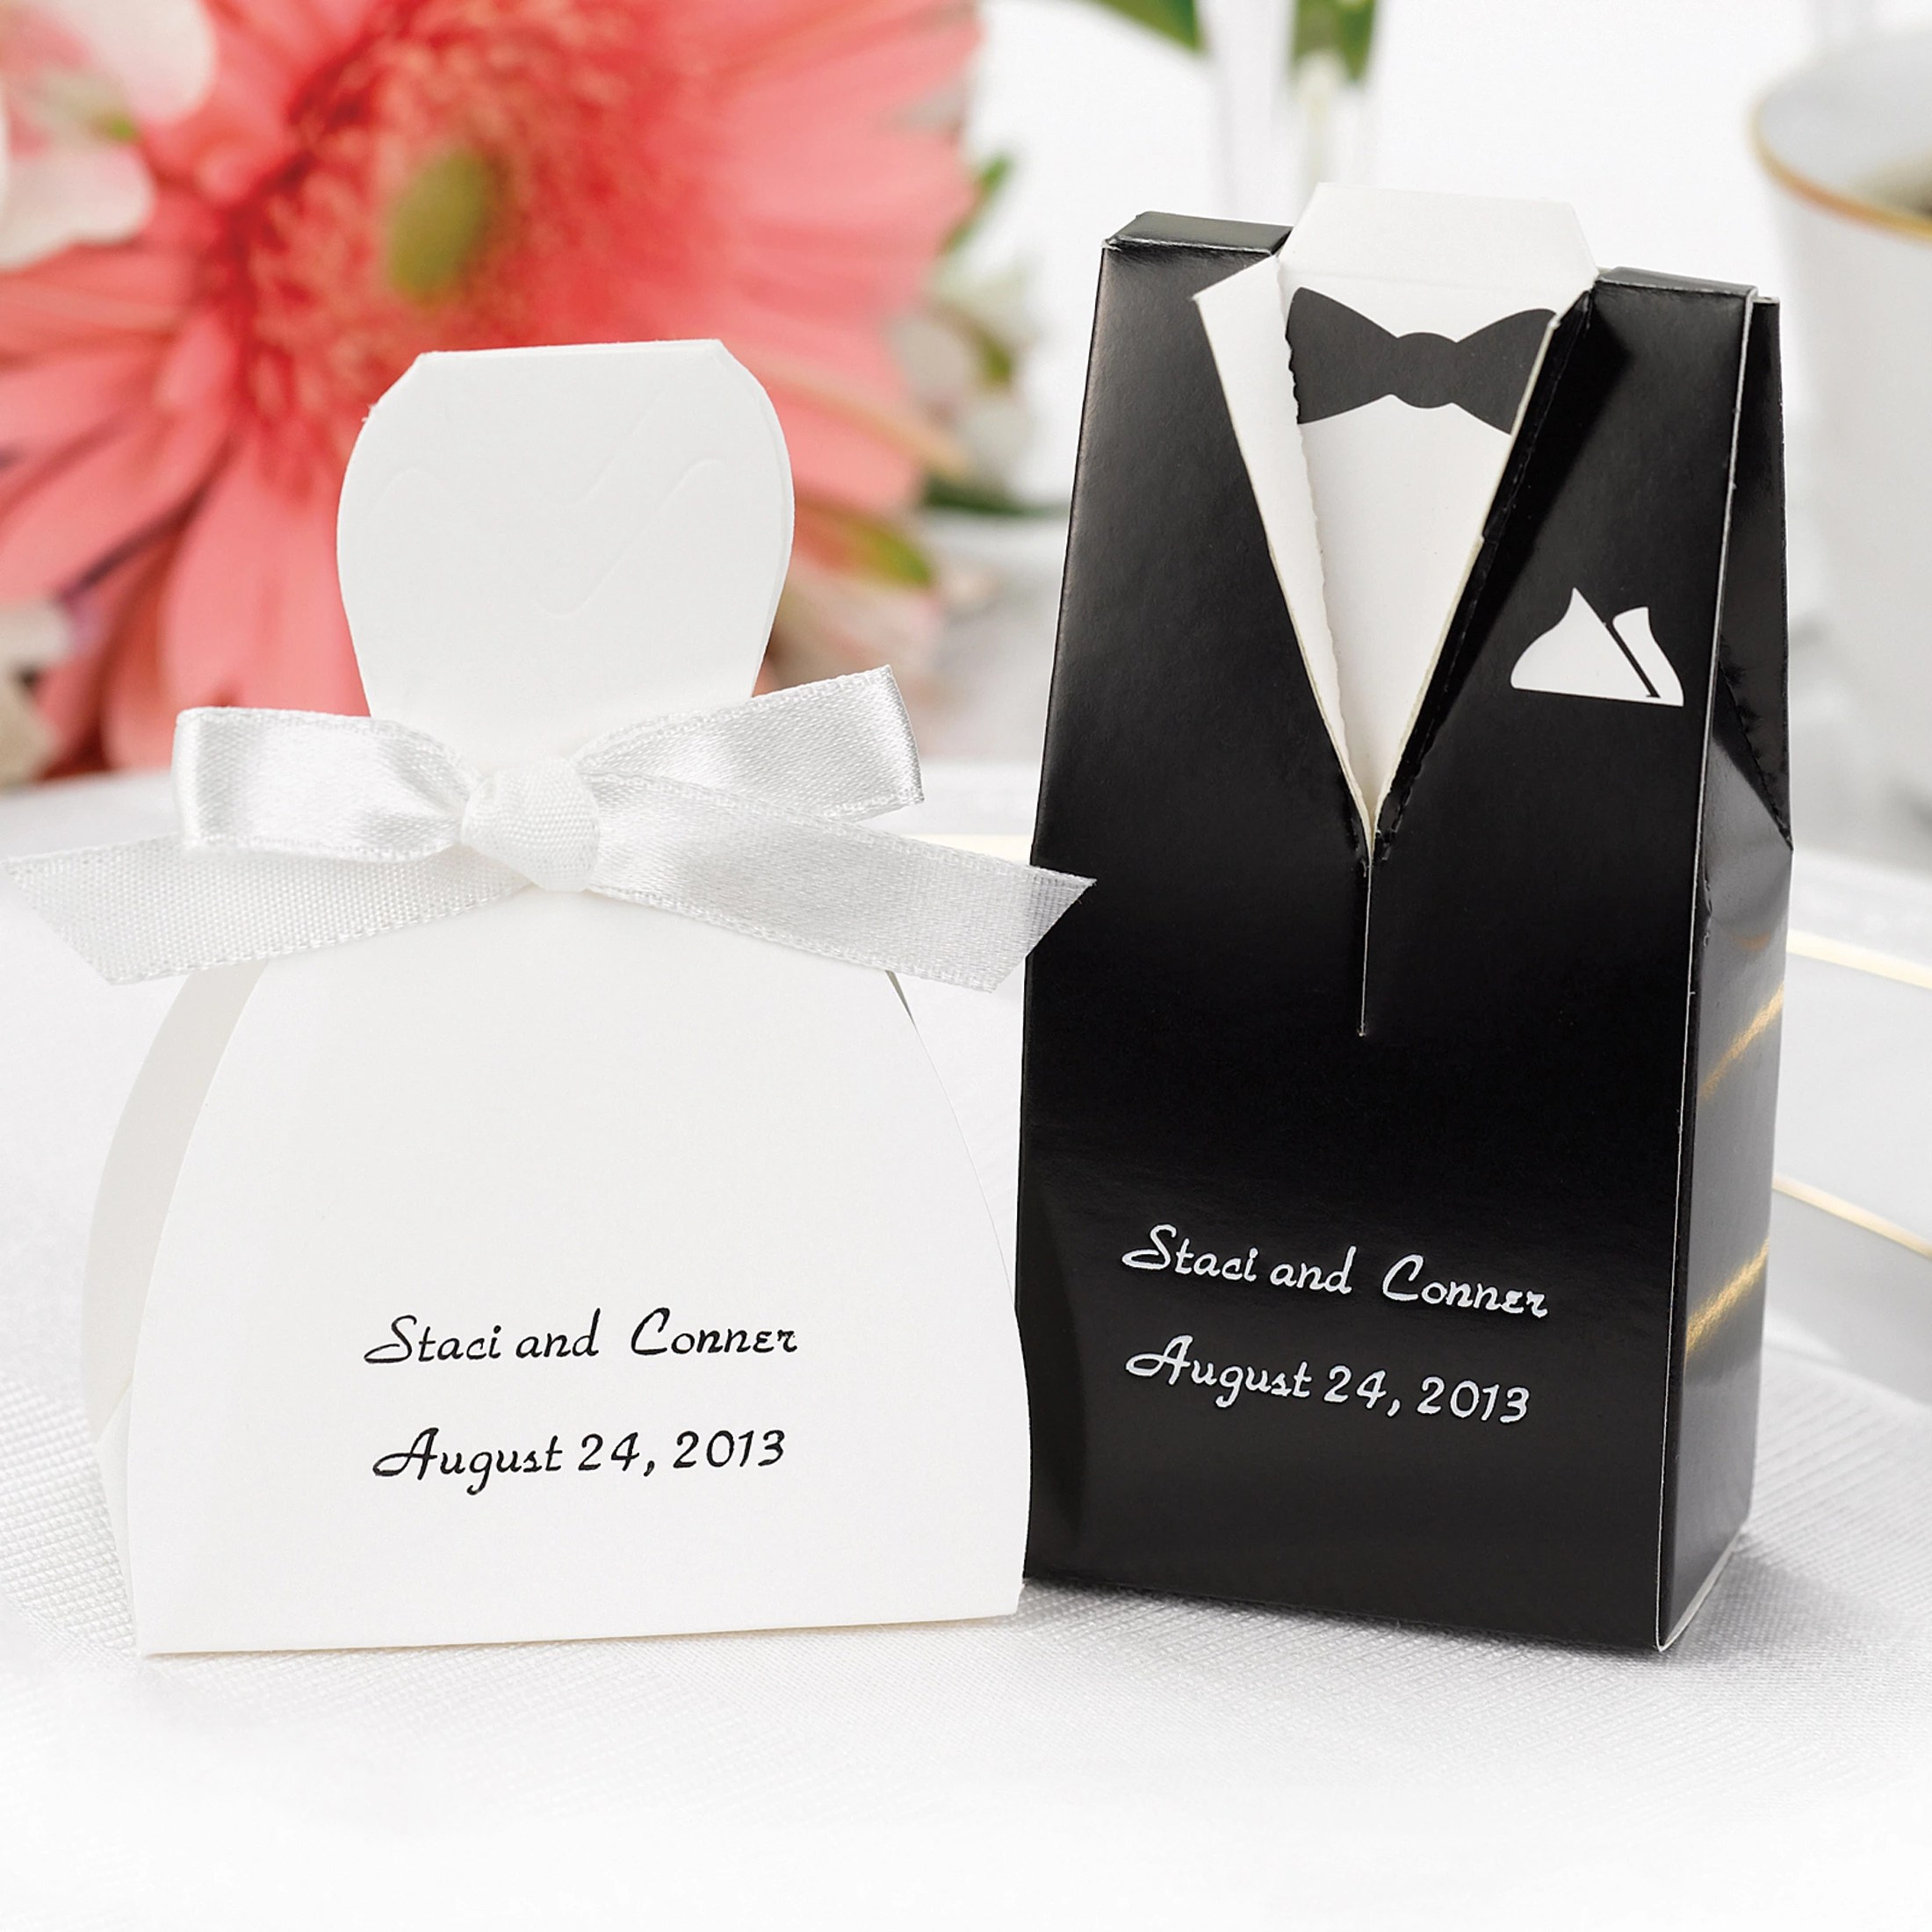 Bride and Groom Favor Boxes wedding favor boxes